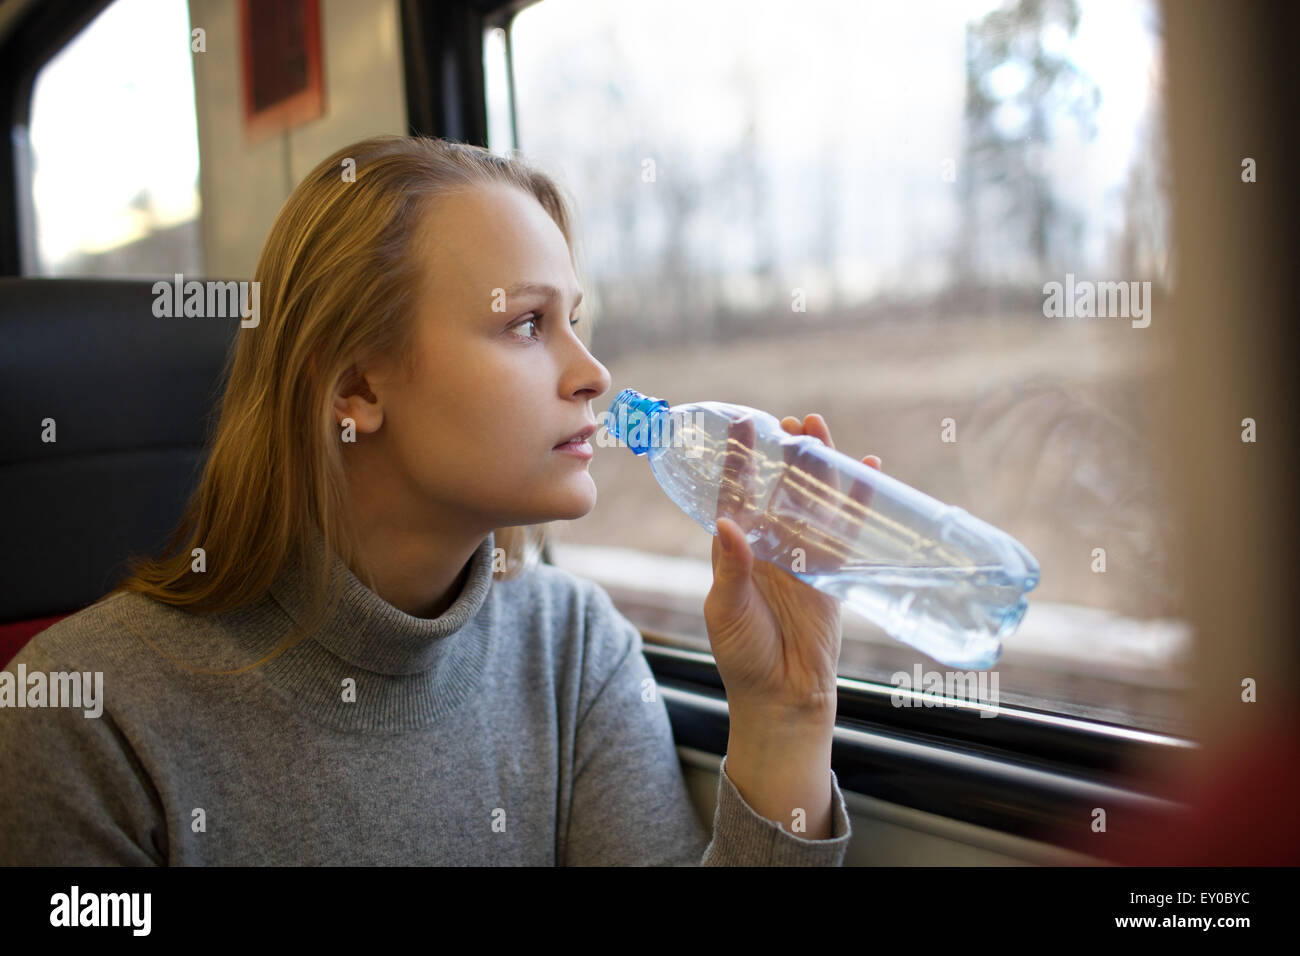 Woman drinking water and looking out train window - Stock Image